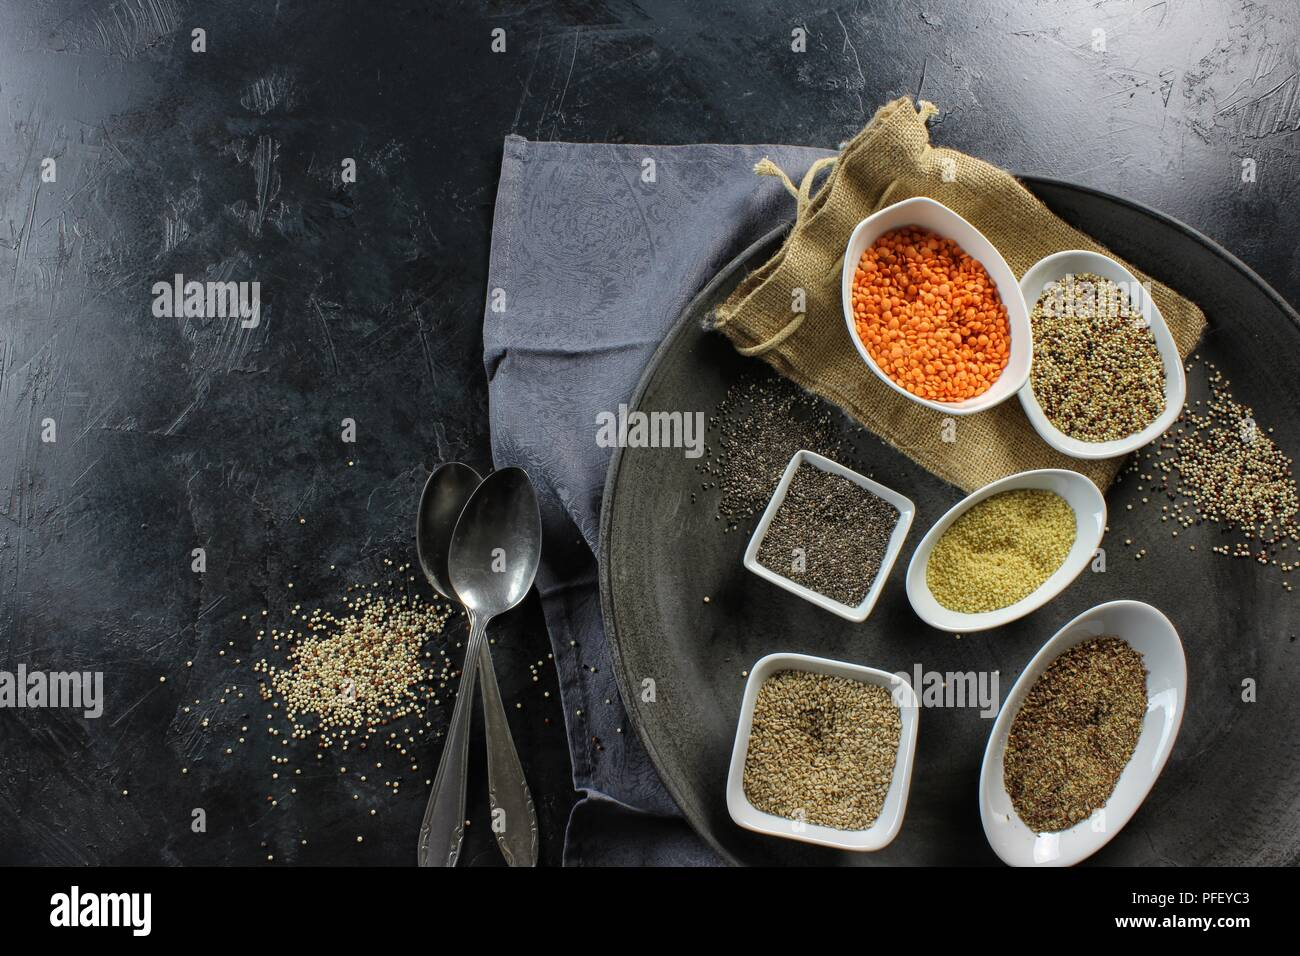 super food in bowls on dark ground - Stock Image